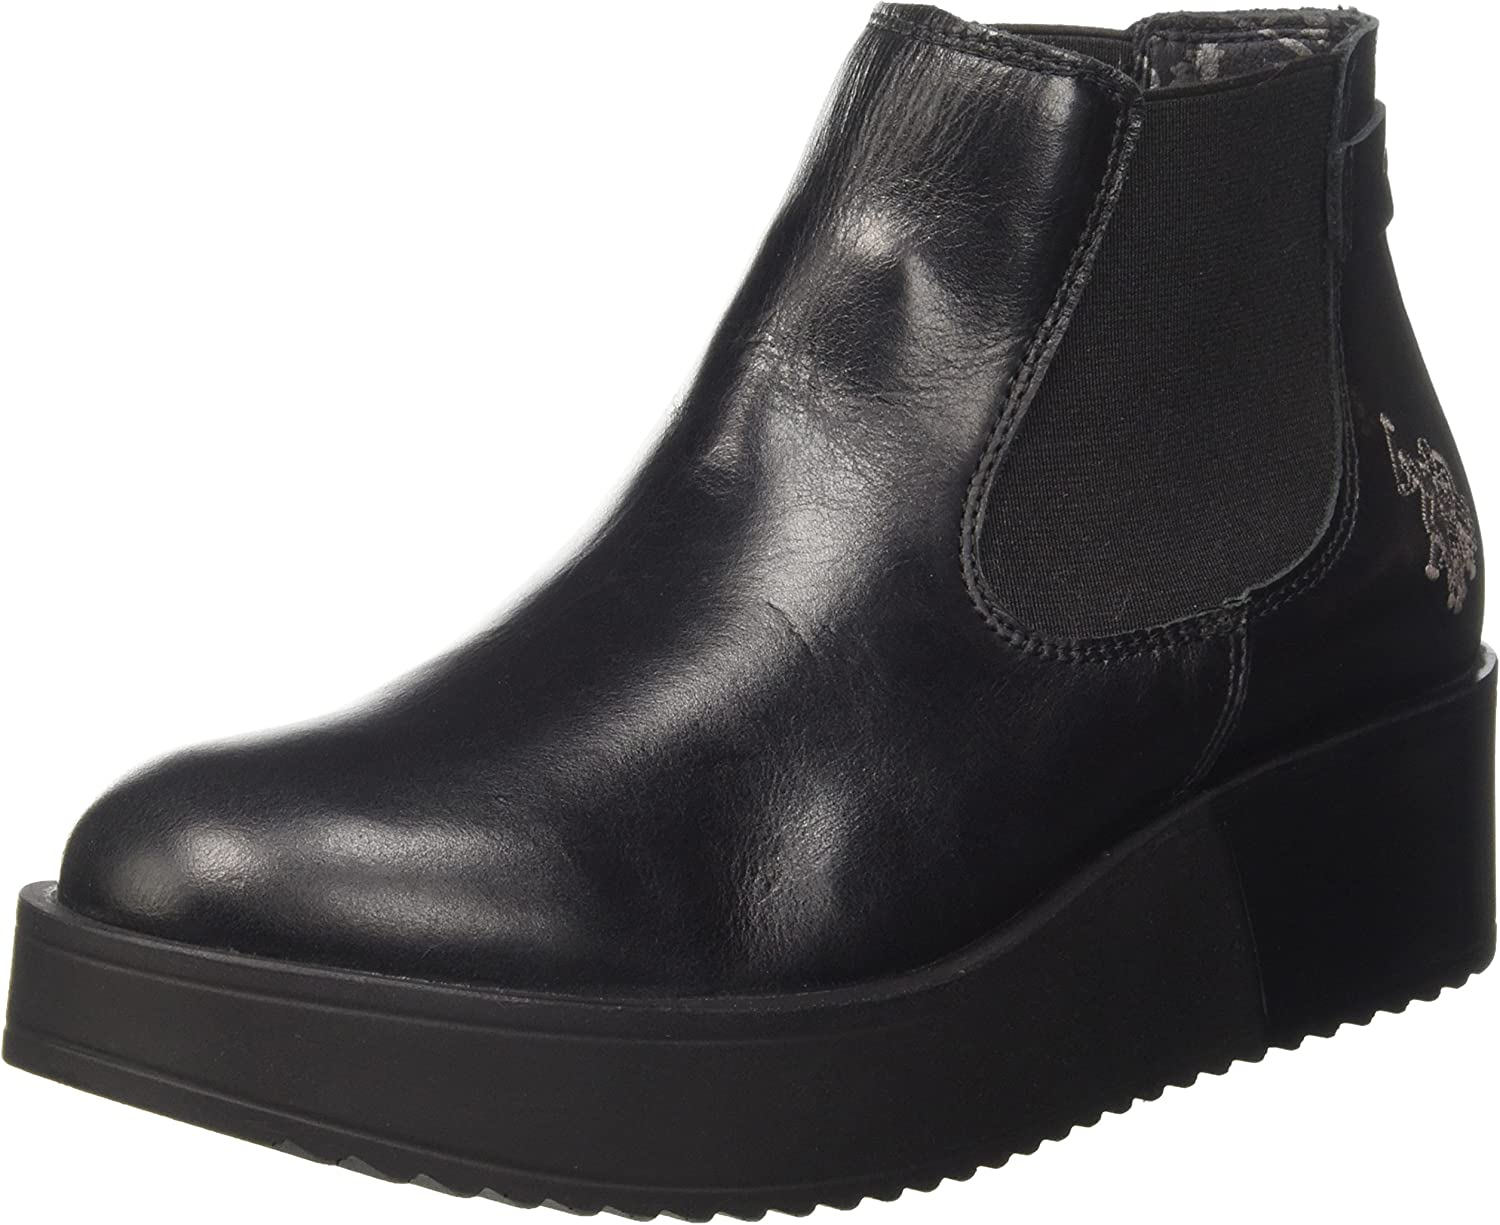 U.S.POLO ASSN. Sapphire Leather, Botas Chelsea para Mujer